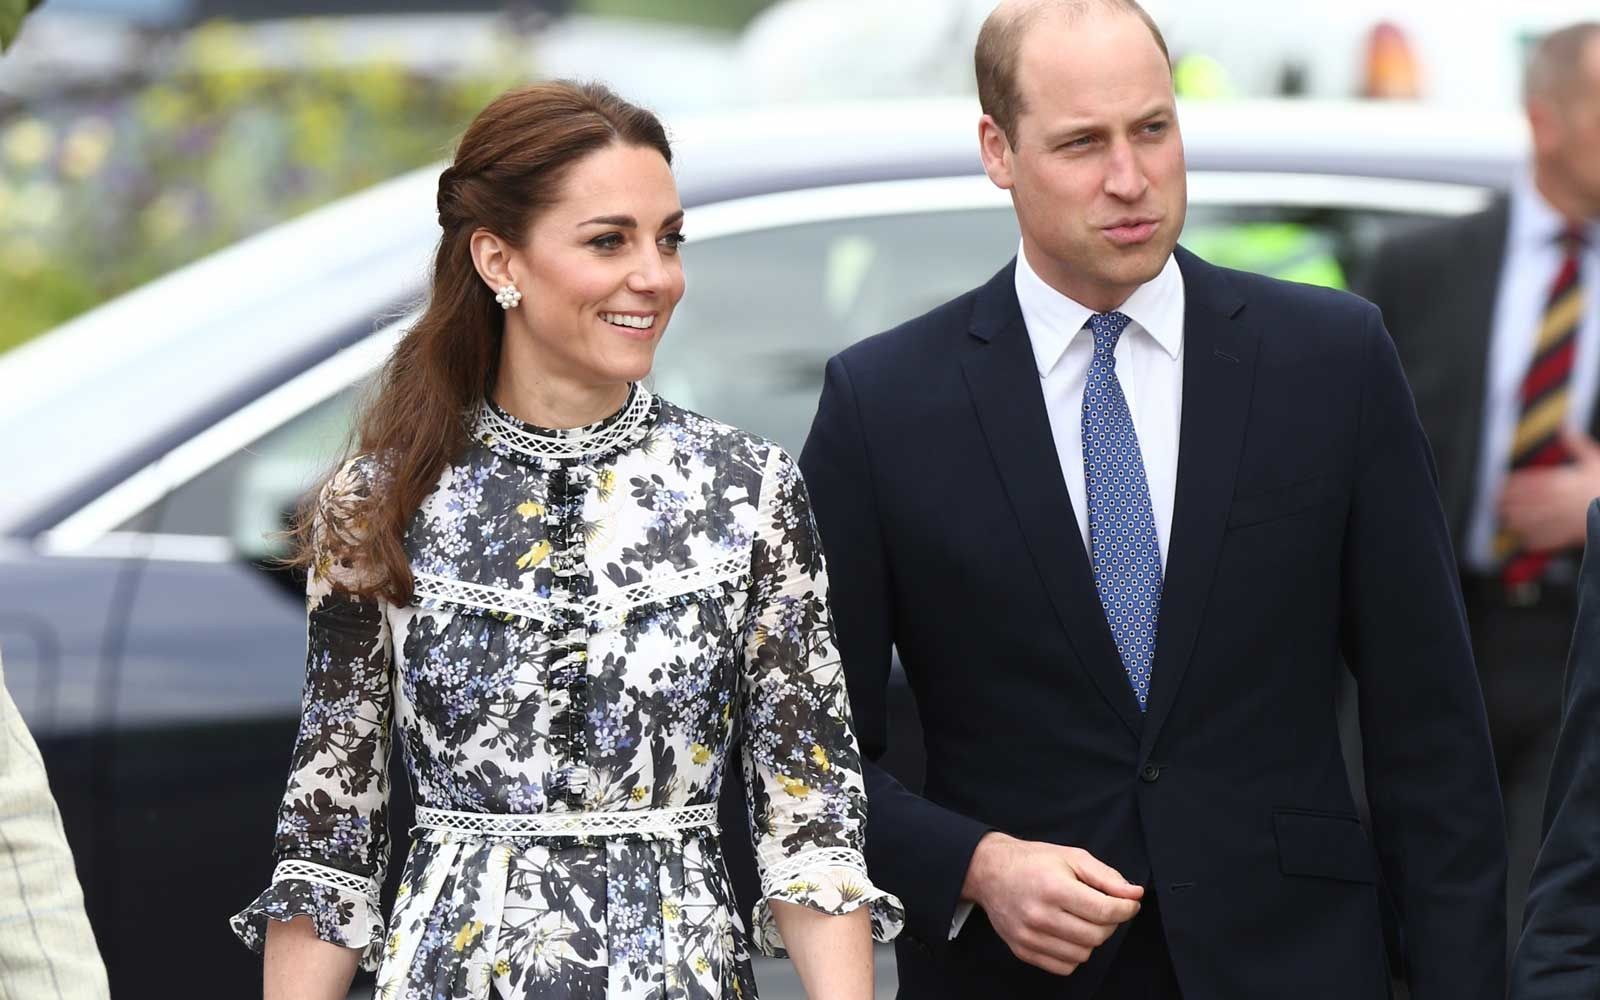 What we know about Prince William and Kate Middleton's $34,000/week island rental